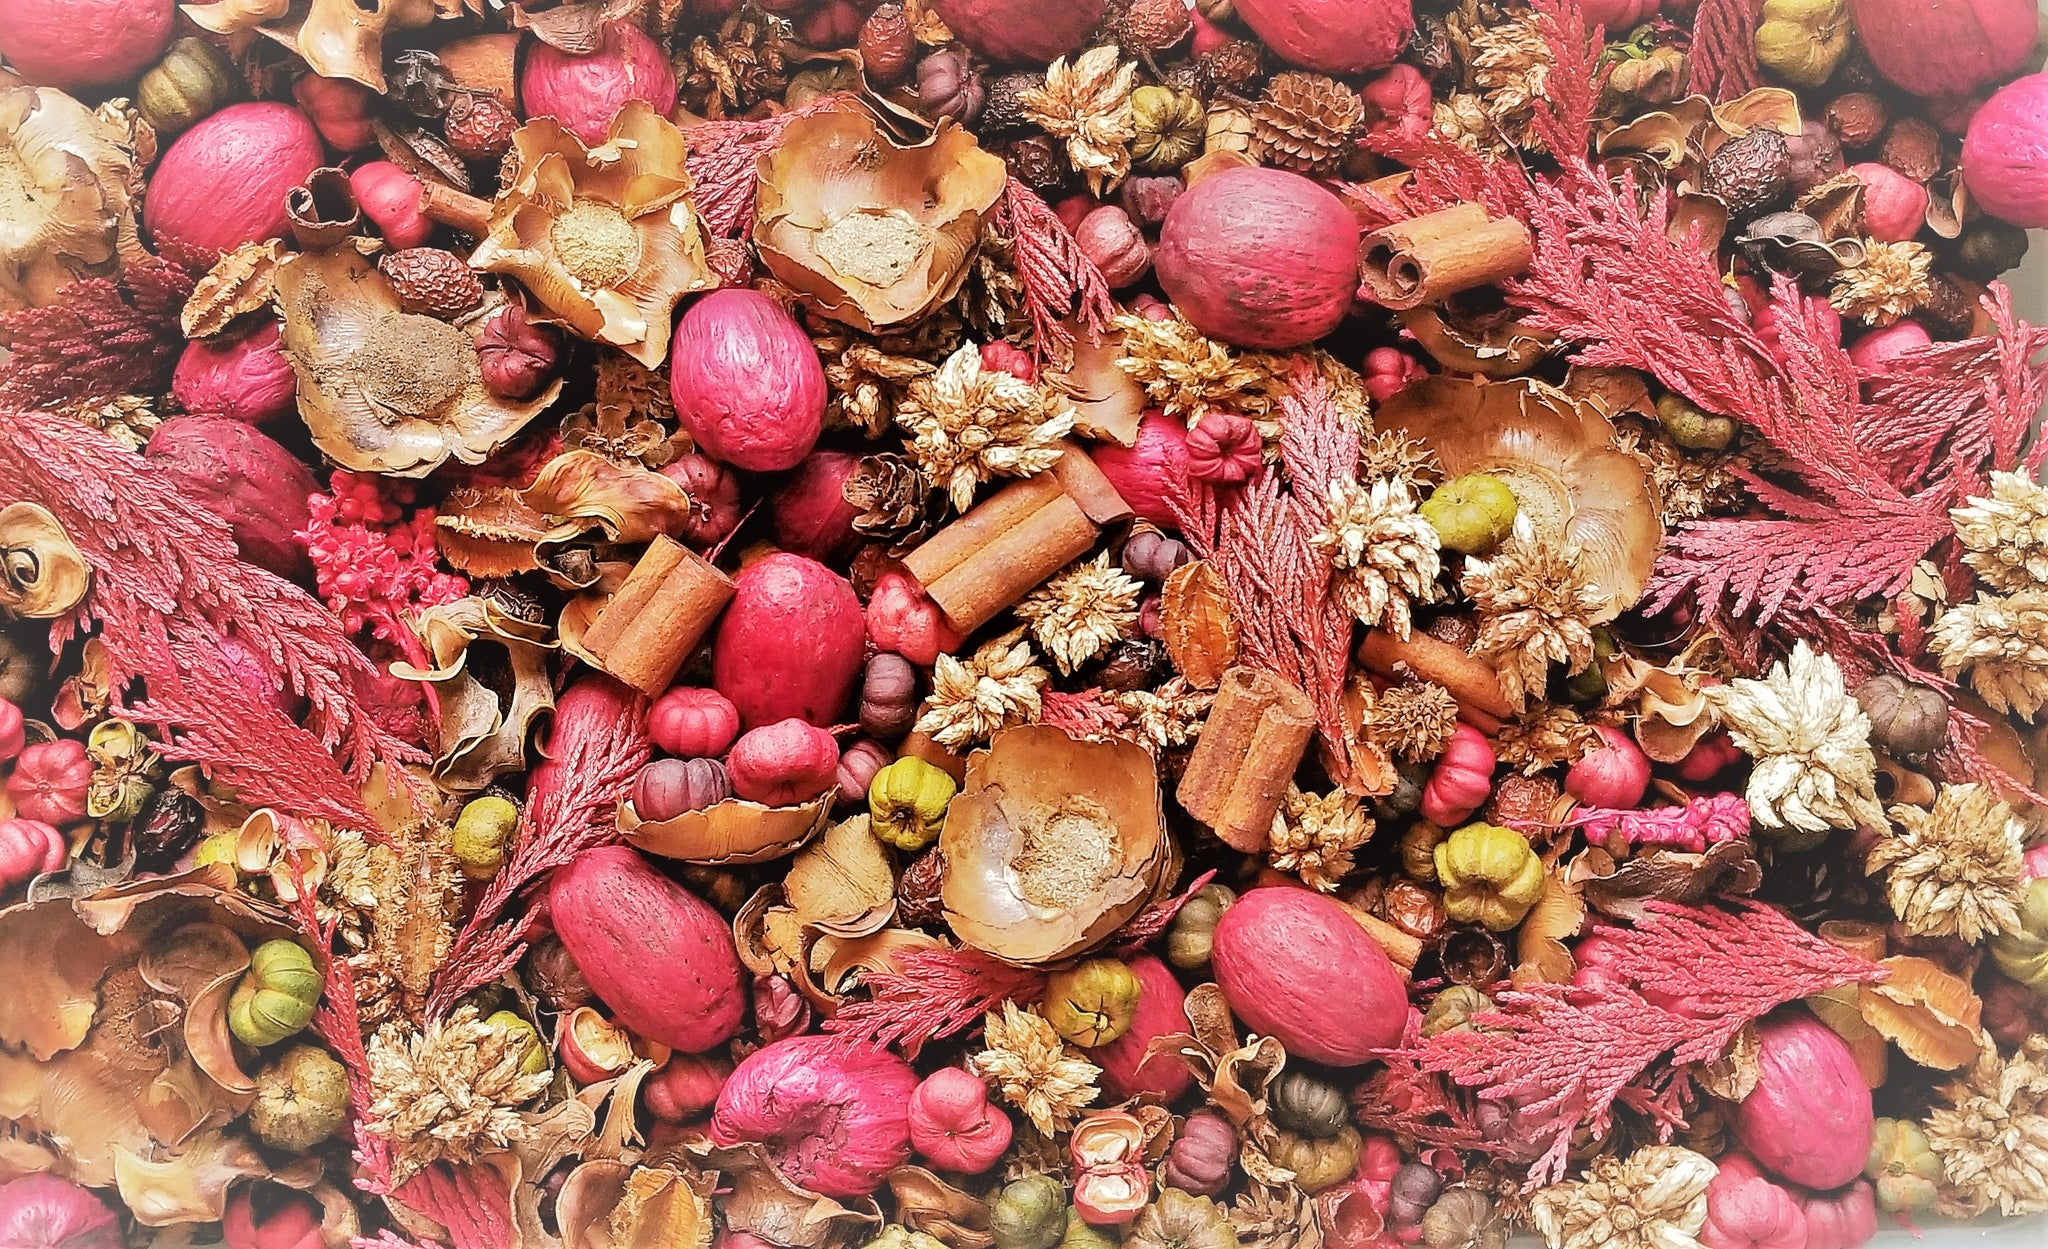 Apple Cinnamon Clove Handcrafted Potpourri